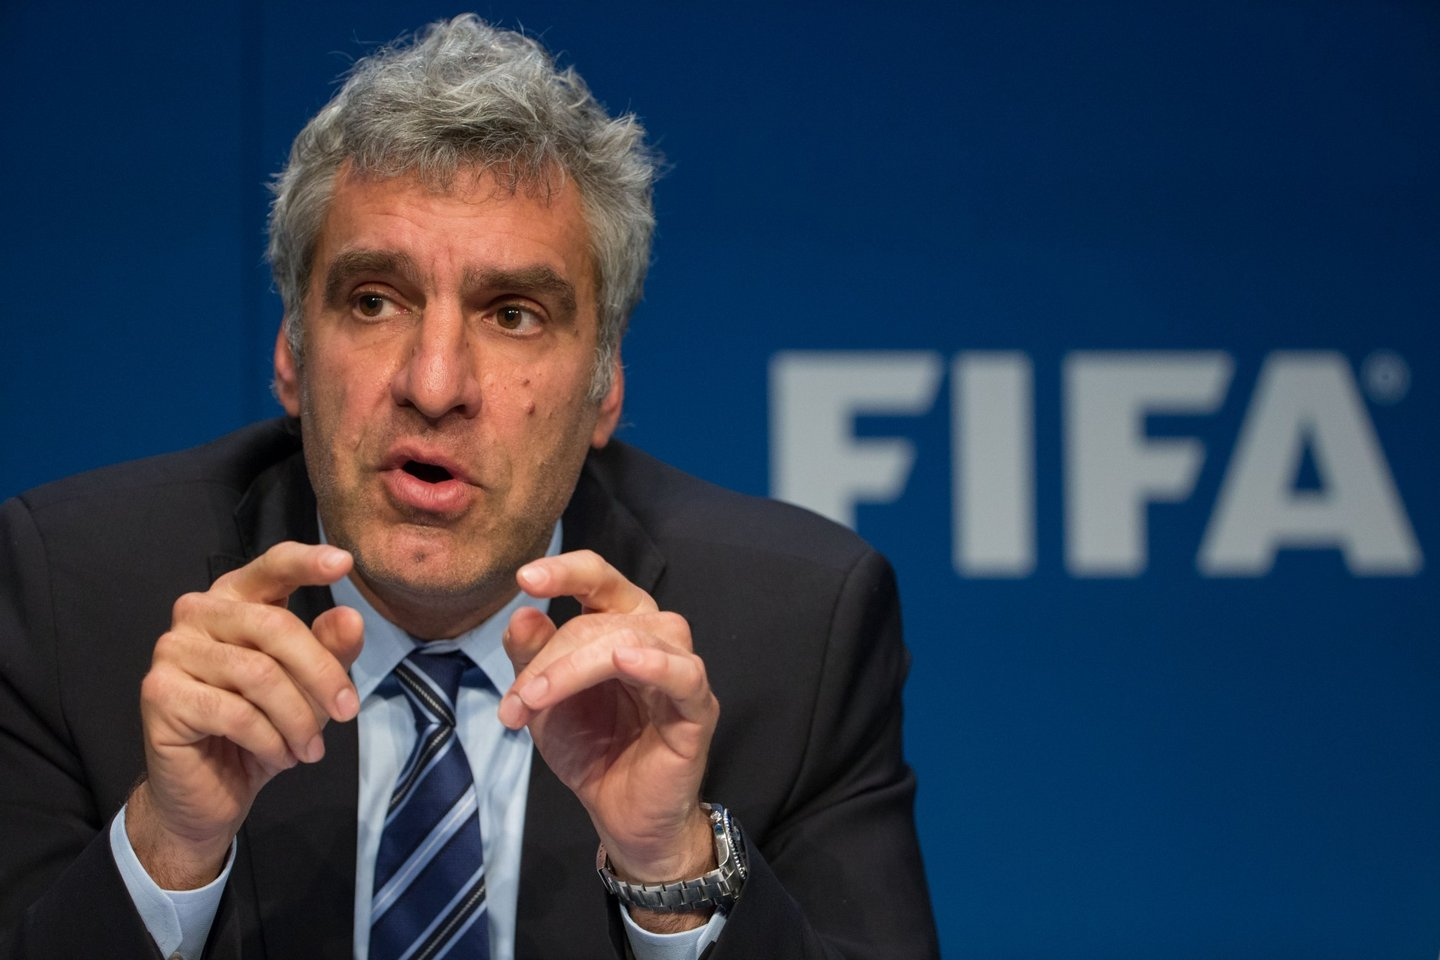 ZURICH, SWITZERLAND - MAY 27: FIFA Director of Communications Walter de Gregorio attends a press conference  at the FIFA headquarters on May 27, 2015 in Zurich, Switzerland. Swiss police on Wednesday raided a Zurich hotel to detain top FIFA football officials as part of a US investigation. (Photo by Philipp Schmidli/Getty Images)